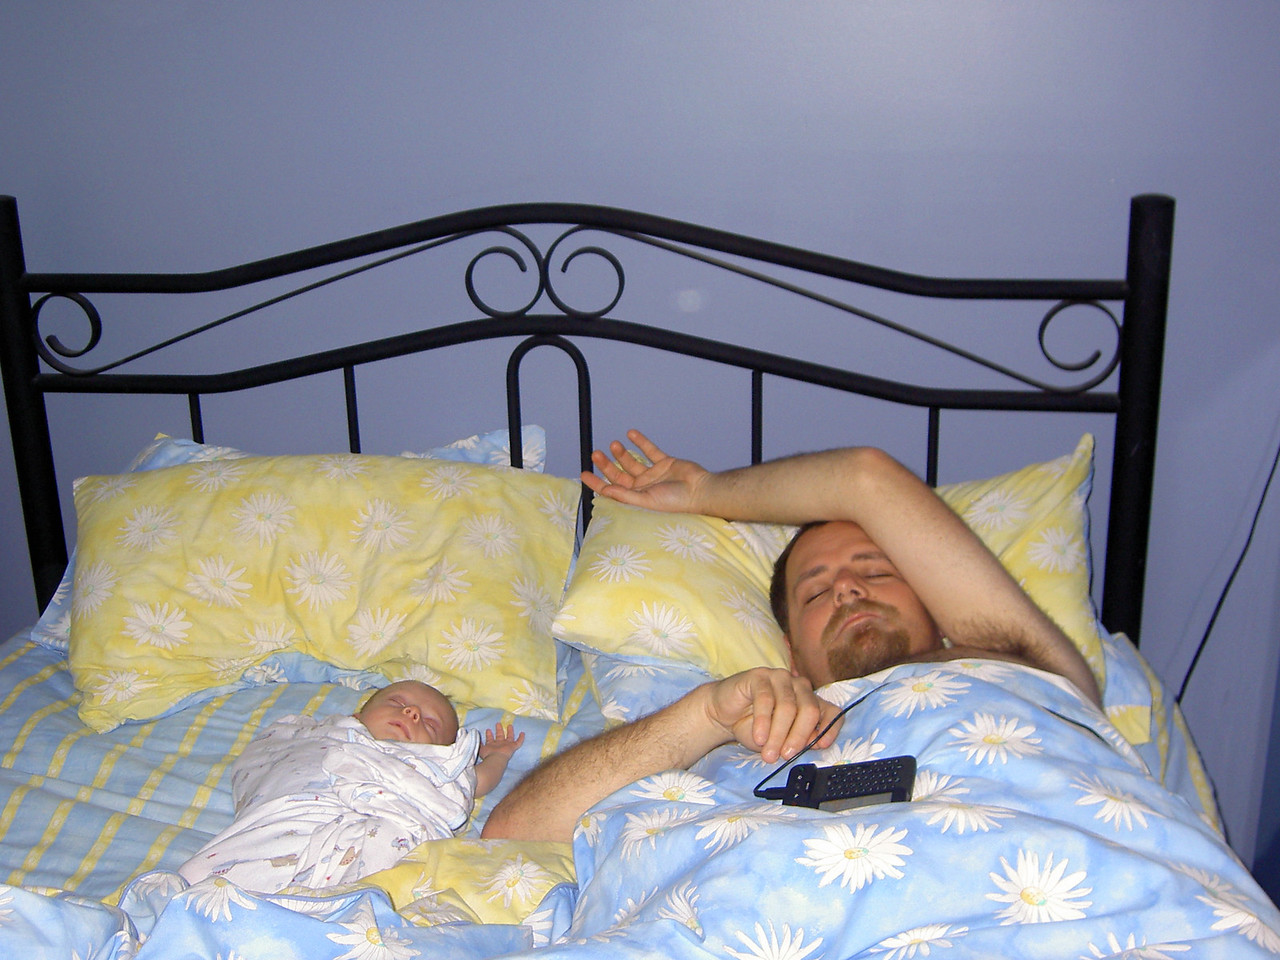 Hanging out with Dad in bed